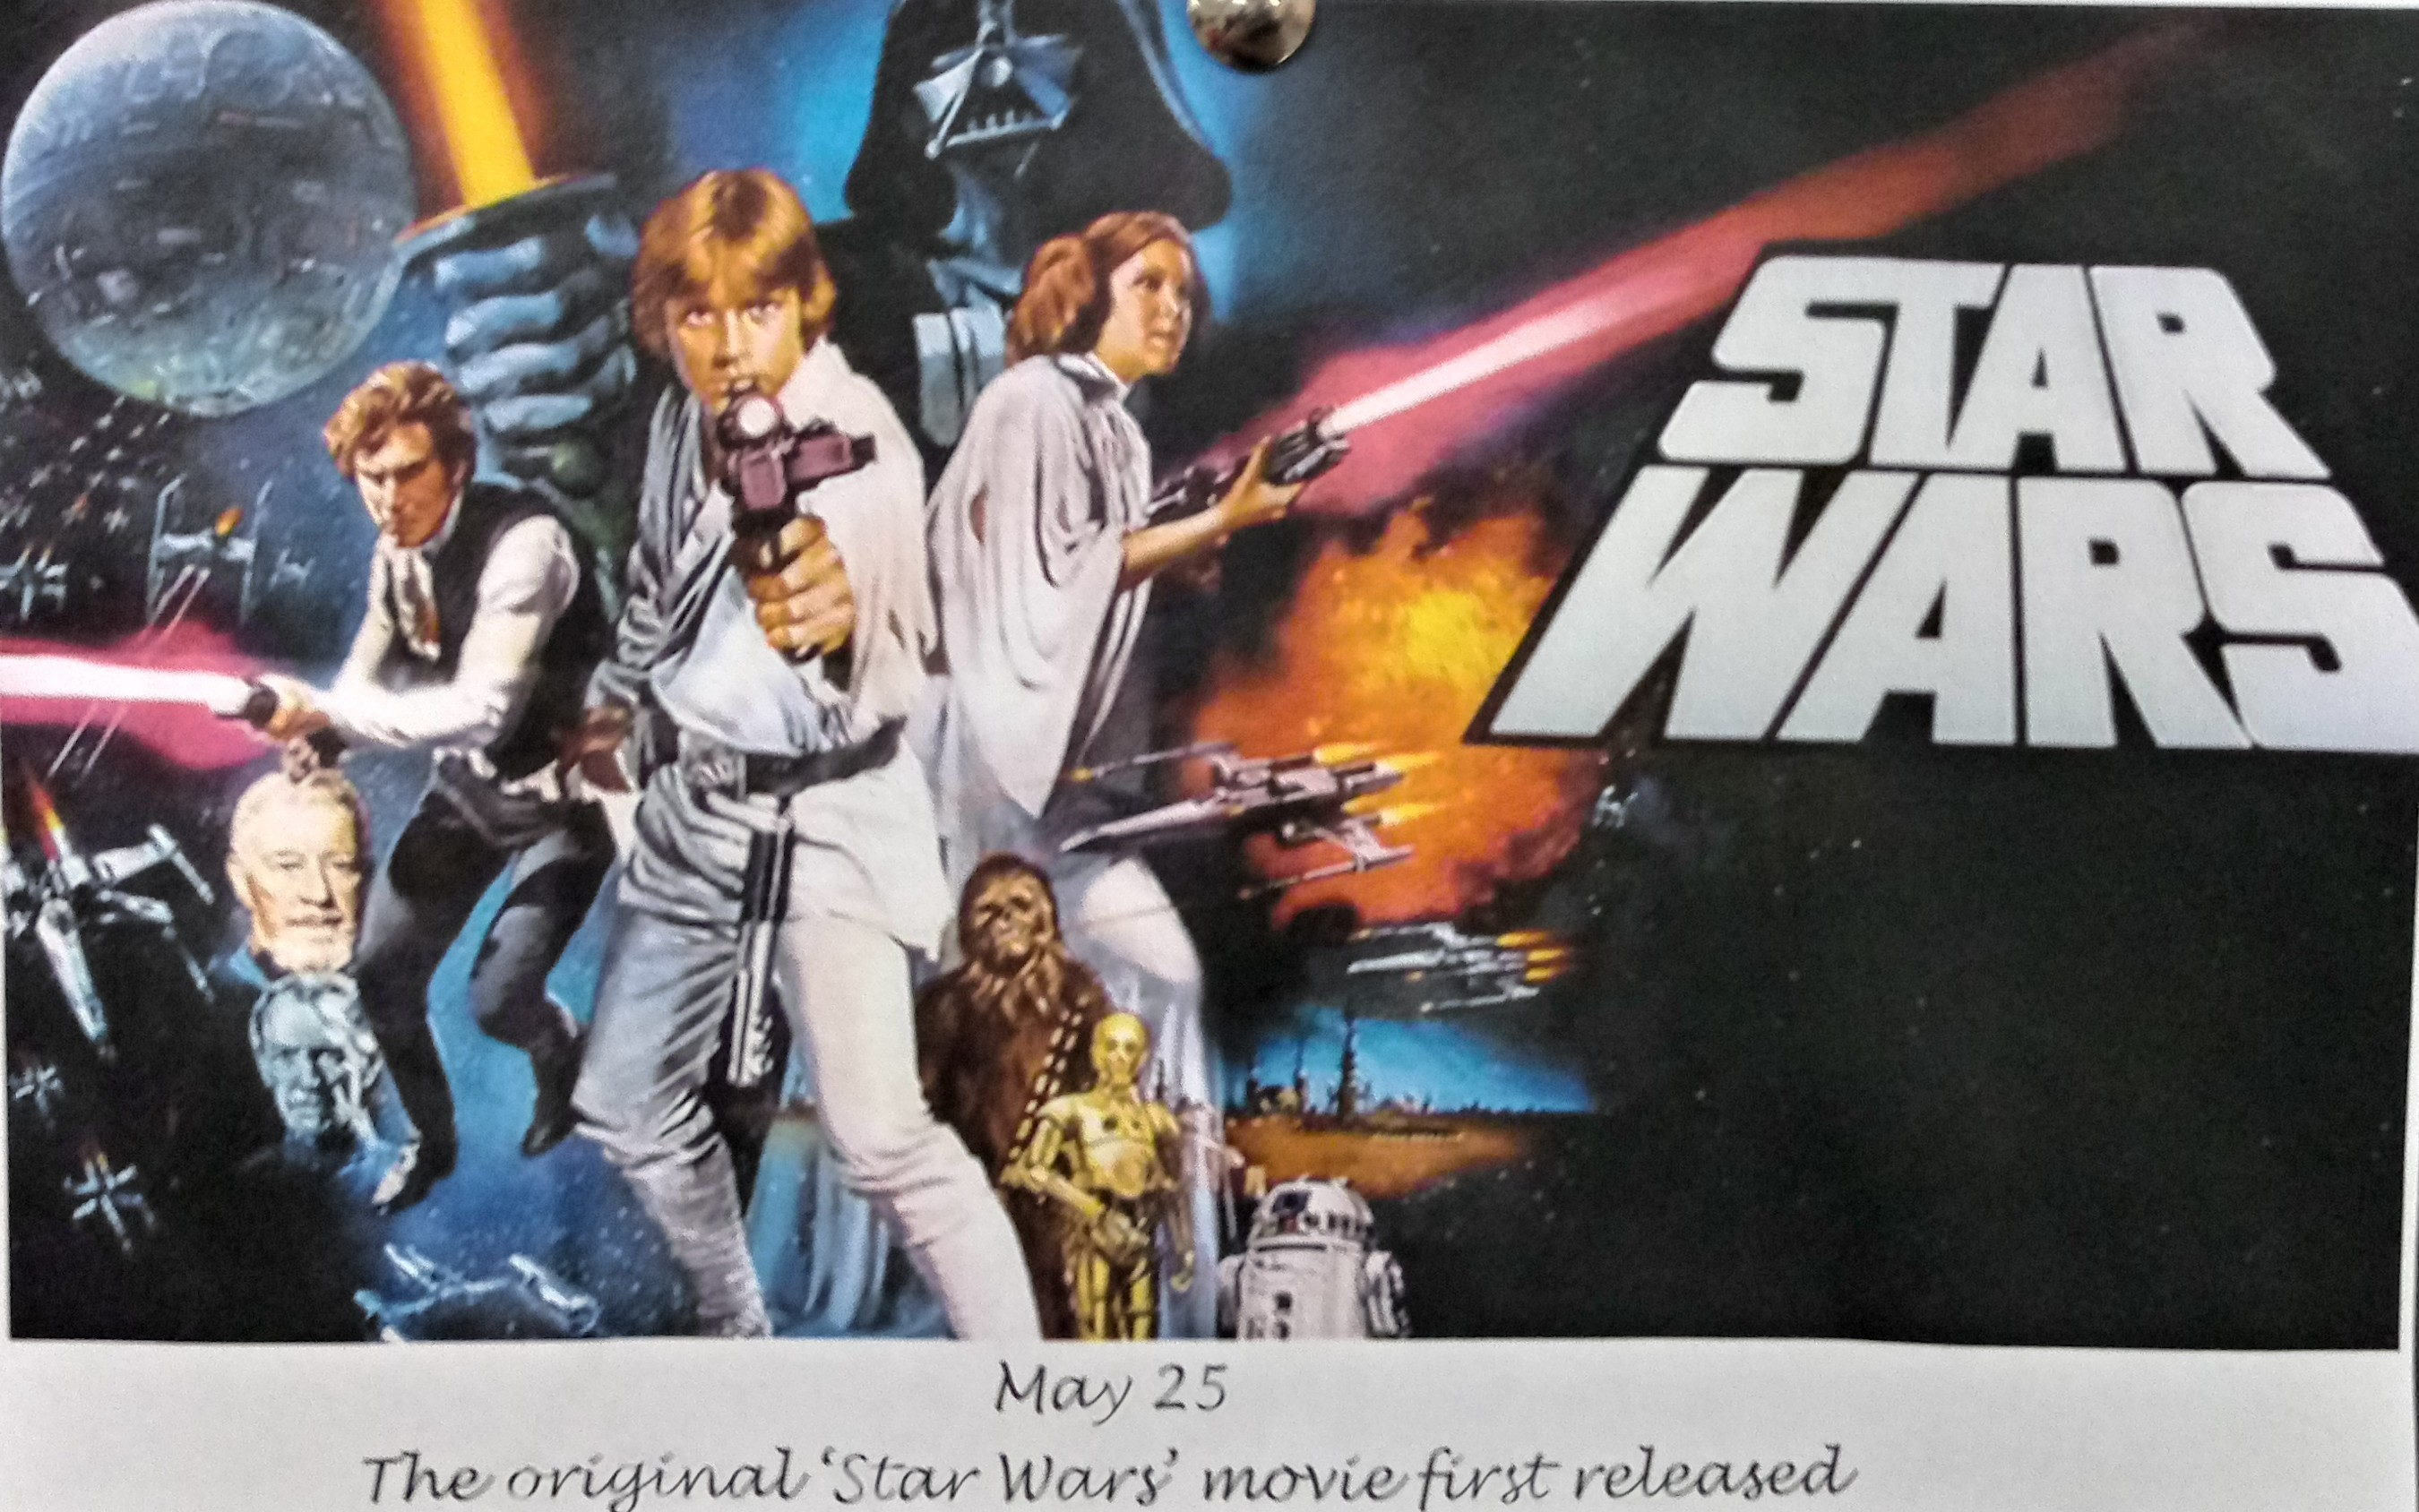 Reproduction of the original Star Wars movie ad featuring the main characters of the movie